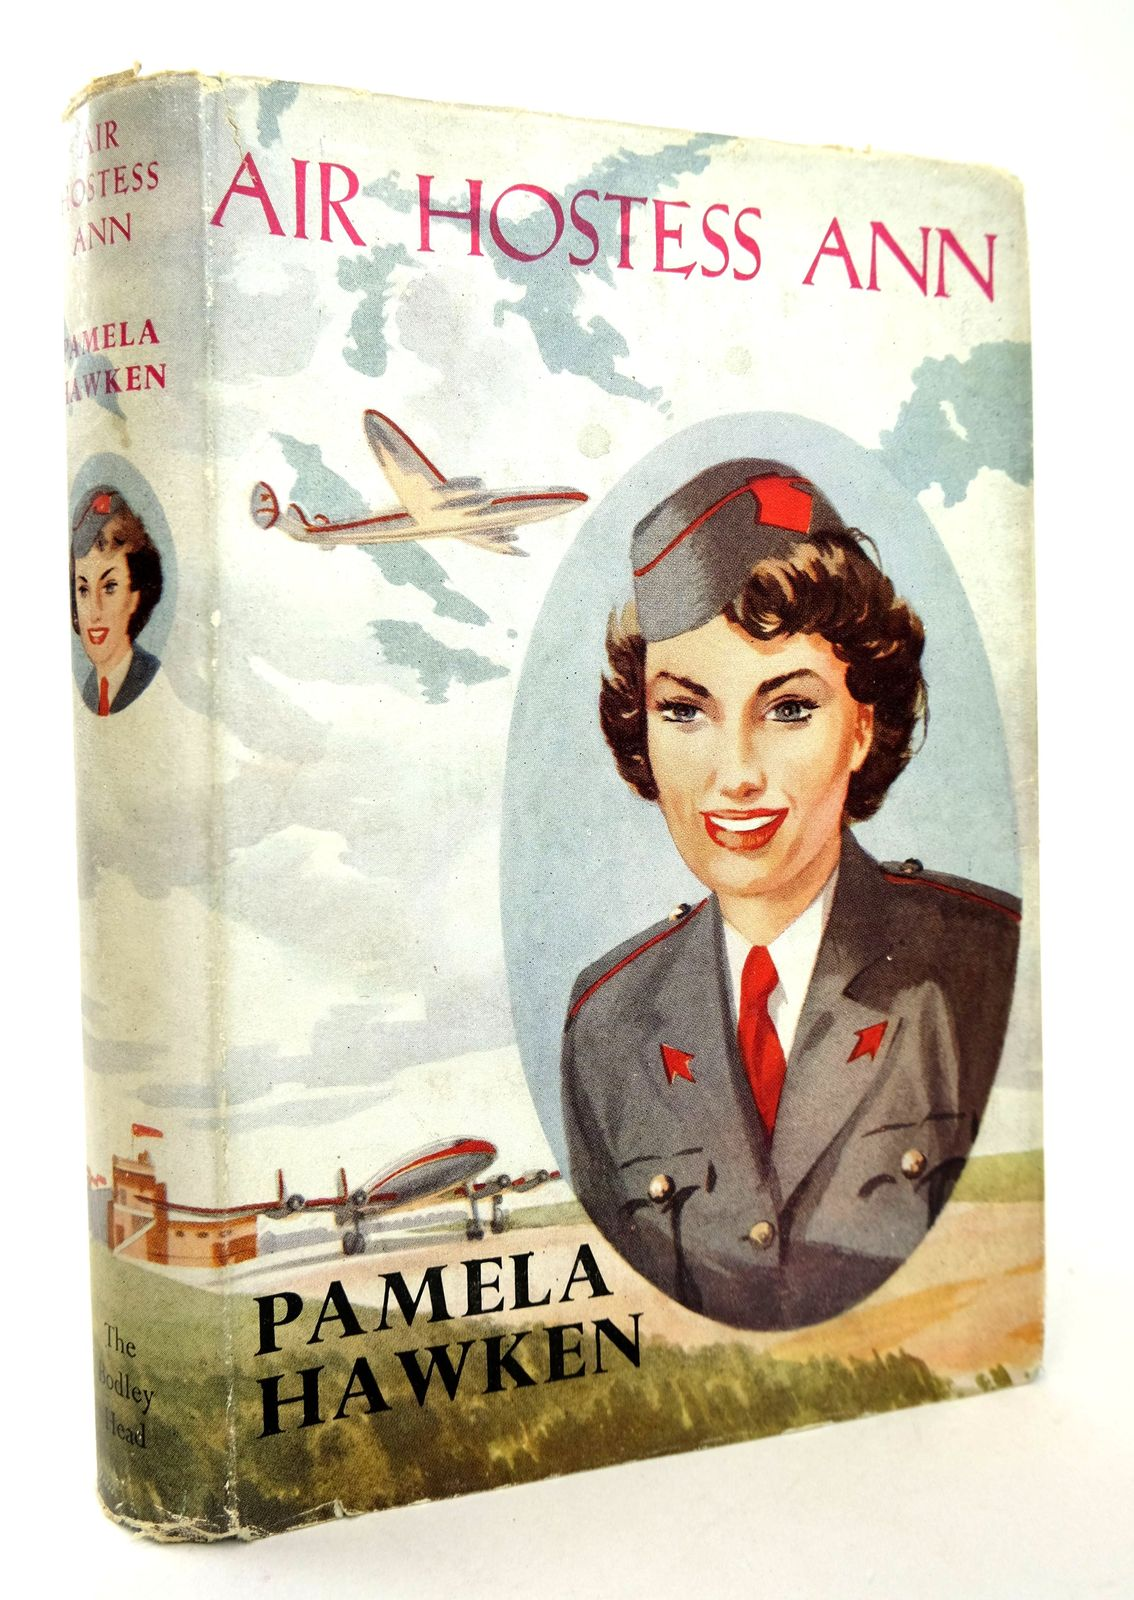 Photo of AIR HOSTESS ANN written by Hawken, Pamela published by The Bodley Head (STOCK CODE: 1818732)  for sale by Stella & Rose's Books